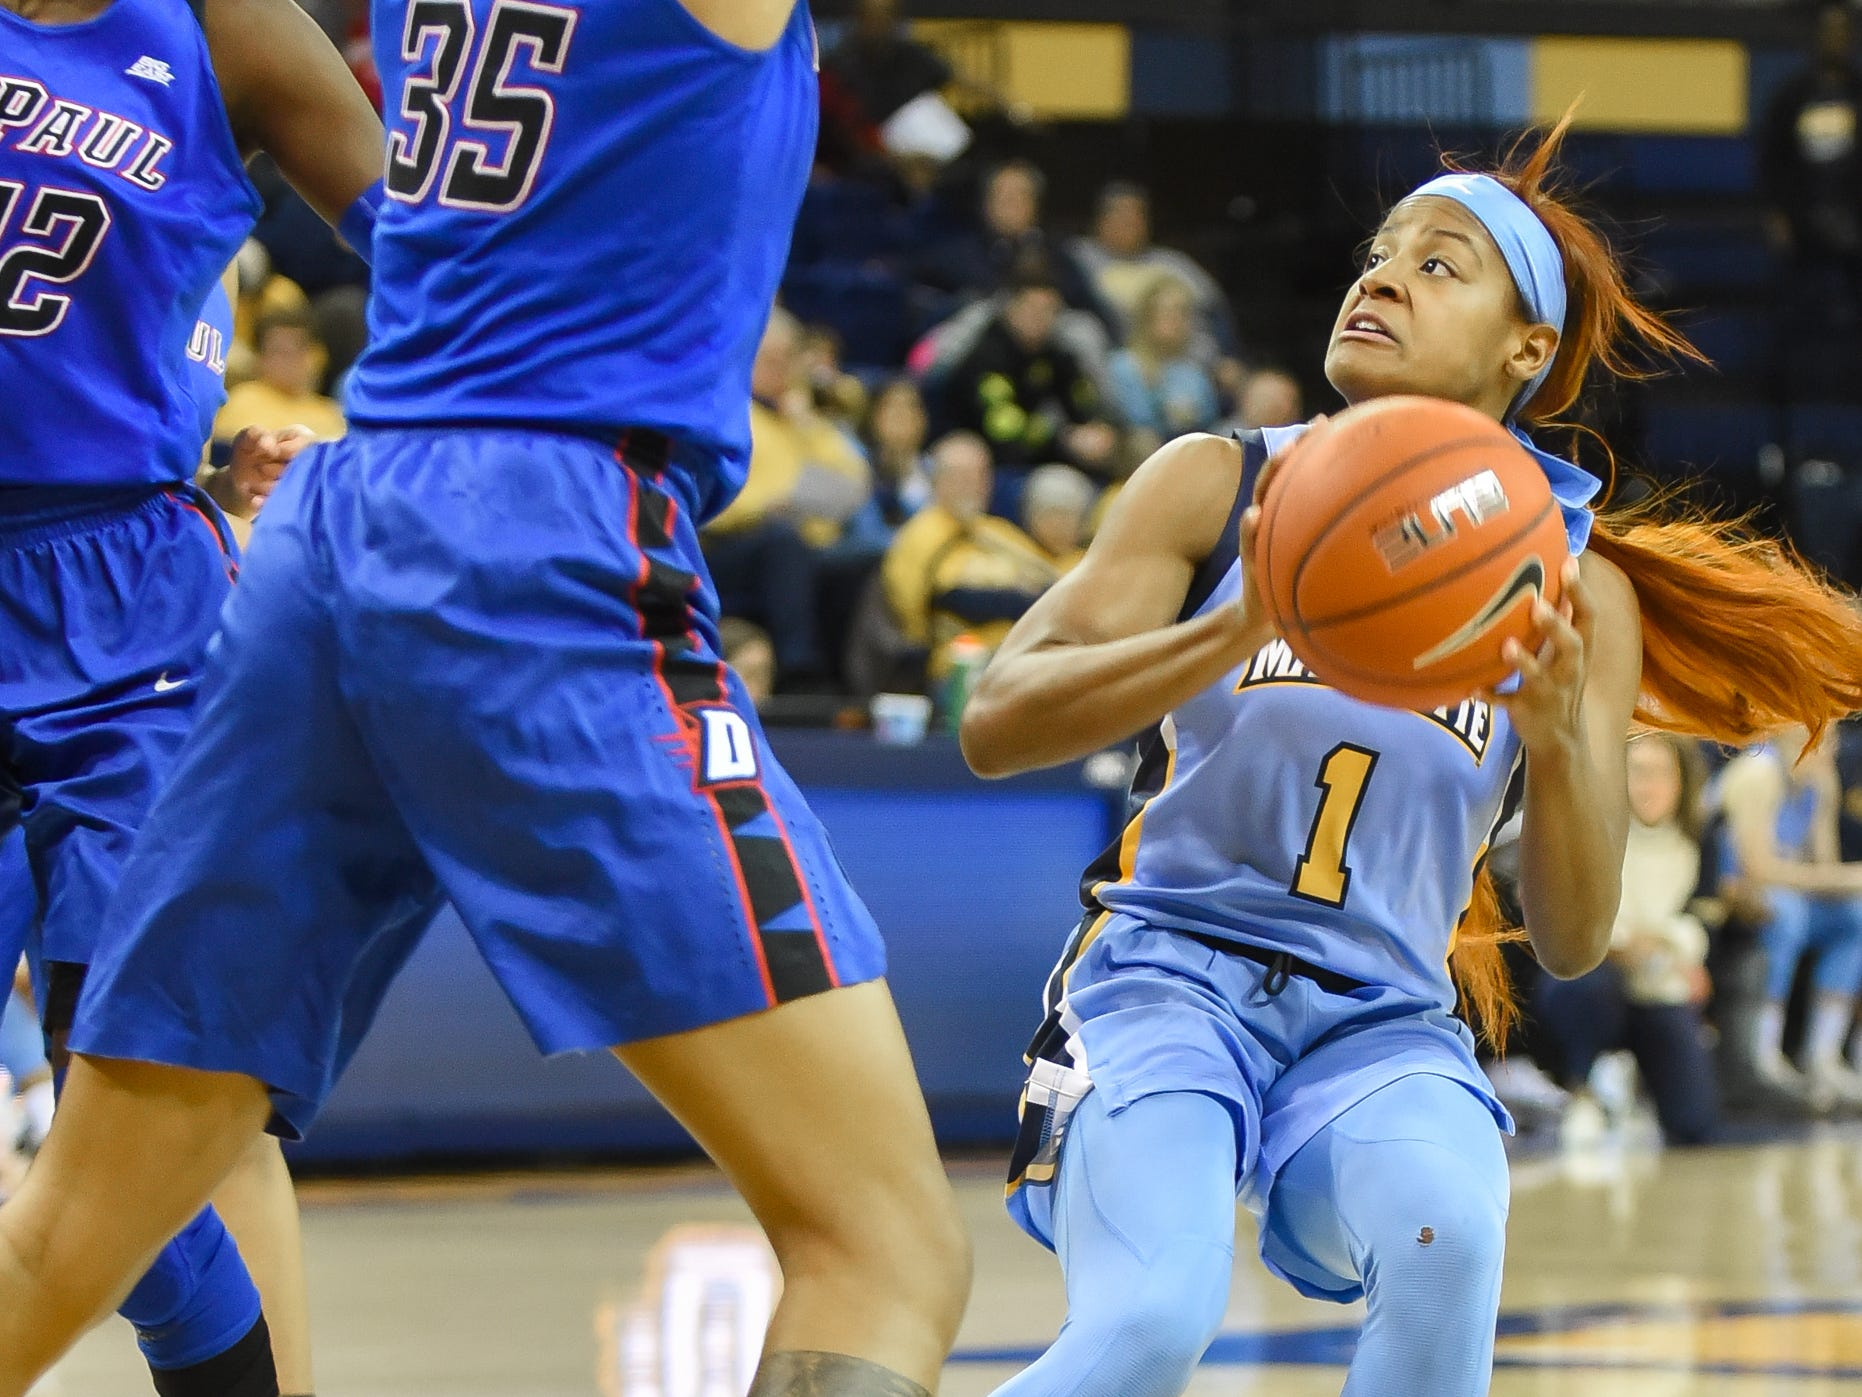 Marquette guard Danielle King eyes a shot over DePaul forward Mart'e Grays in a Big East Conference women's basketball game Friday, January 4, 2019, at the Al McGuire Center on the Marquette campus.